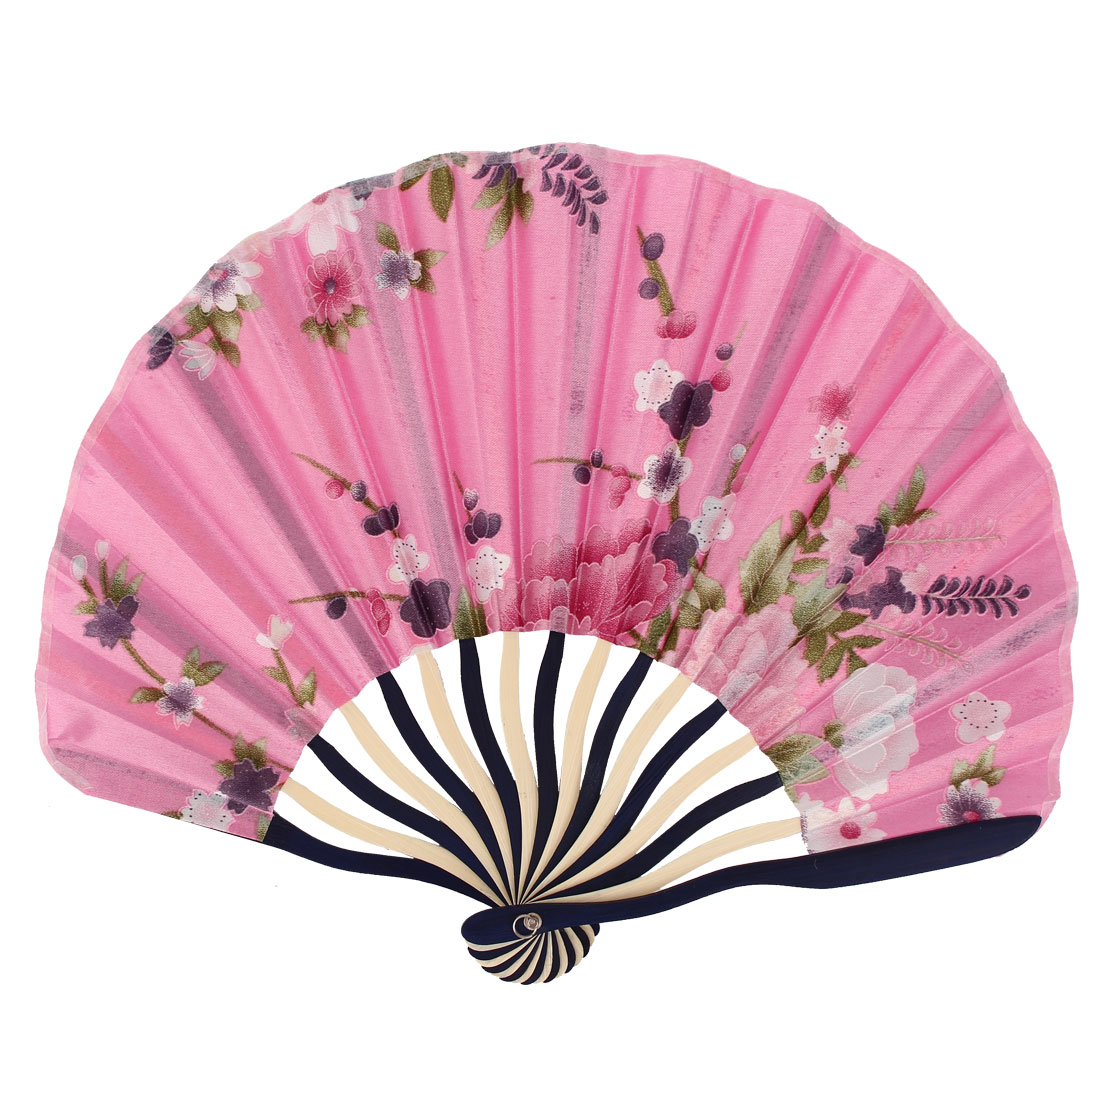 Japanese Style Flower Printed Bamboo Rib Portable Foldable Hand Fan Fans Art Ornament Pink